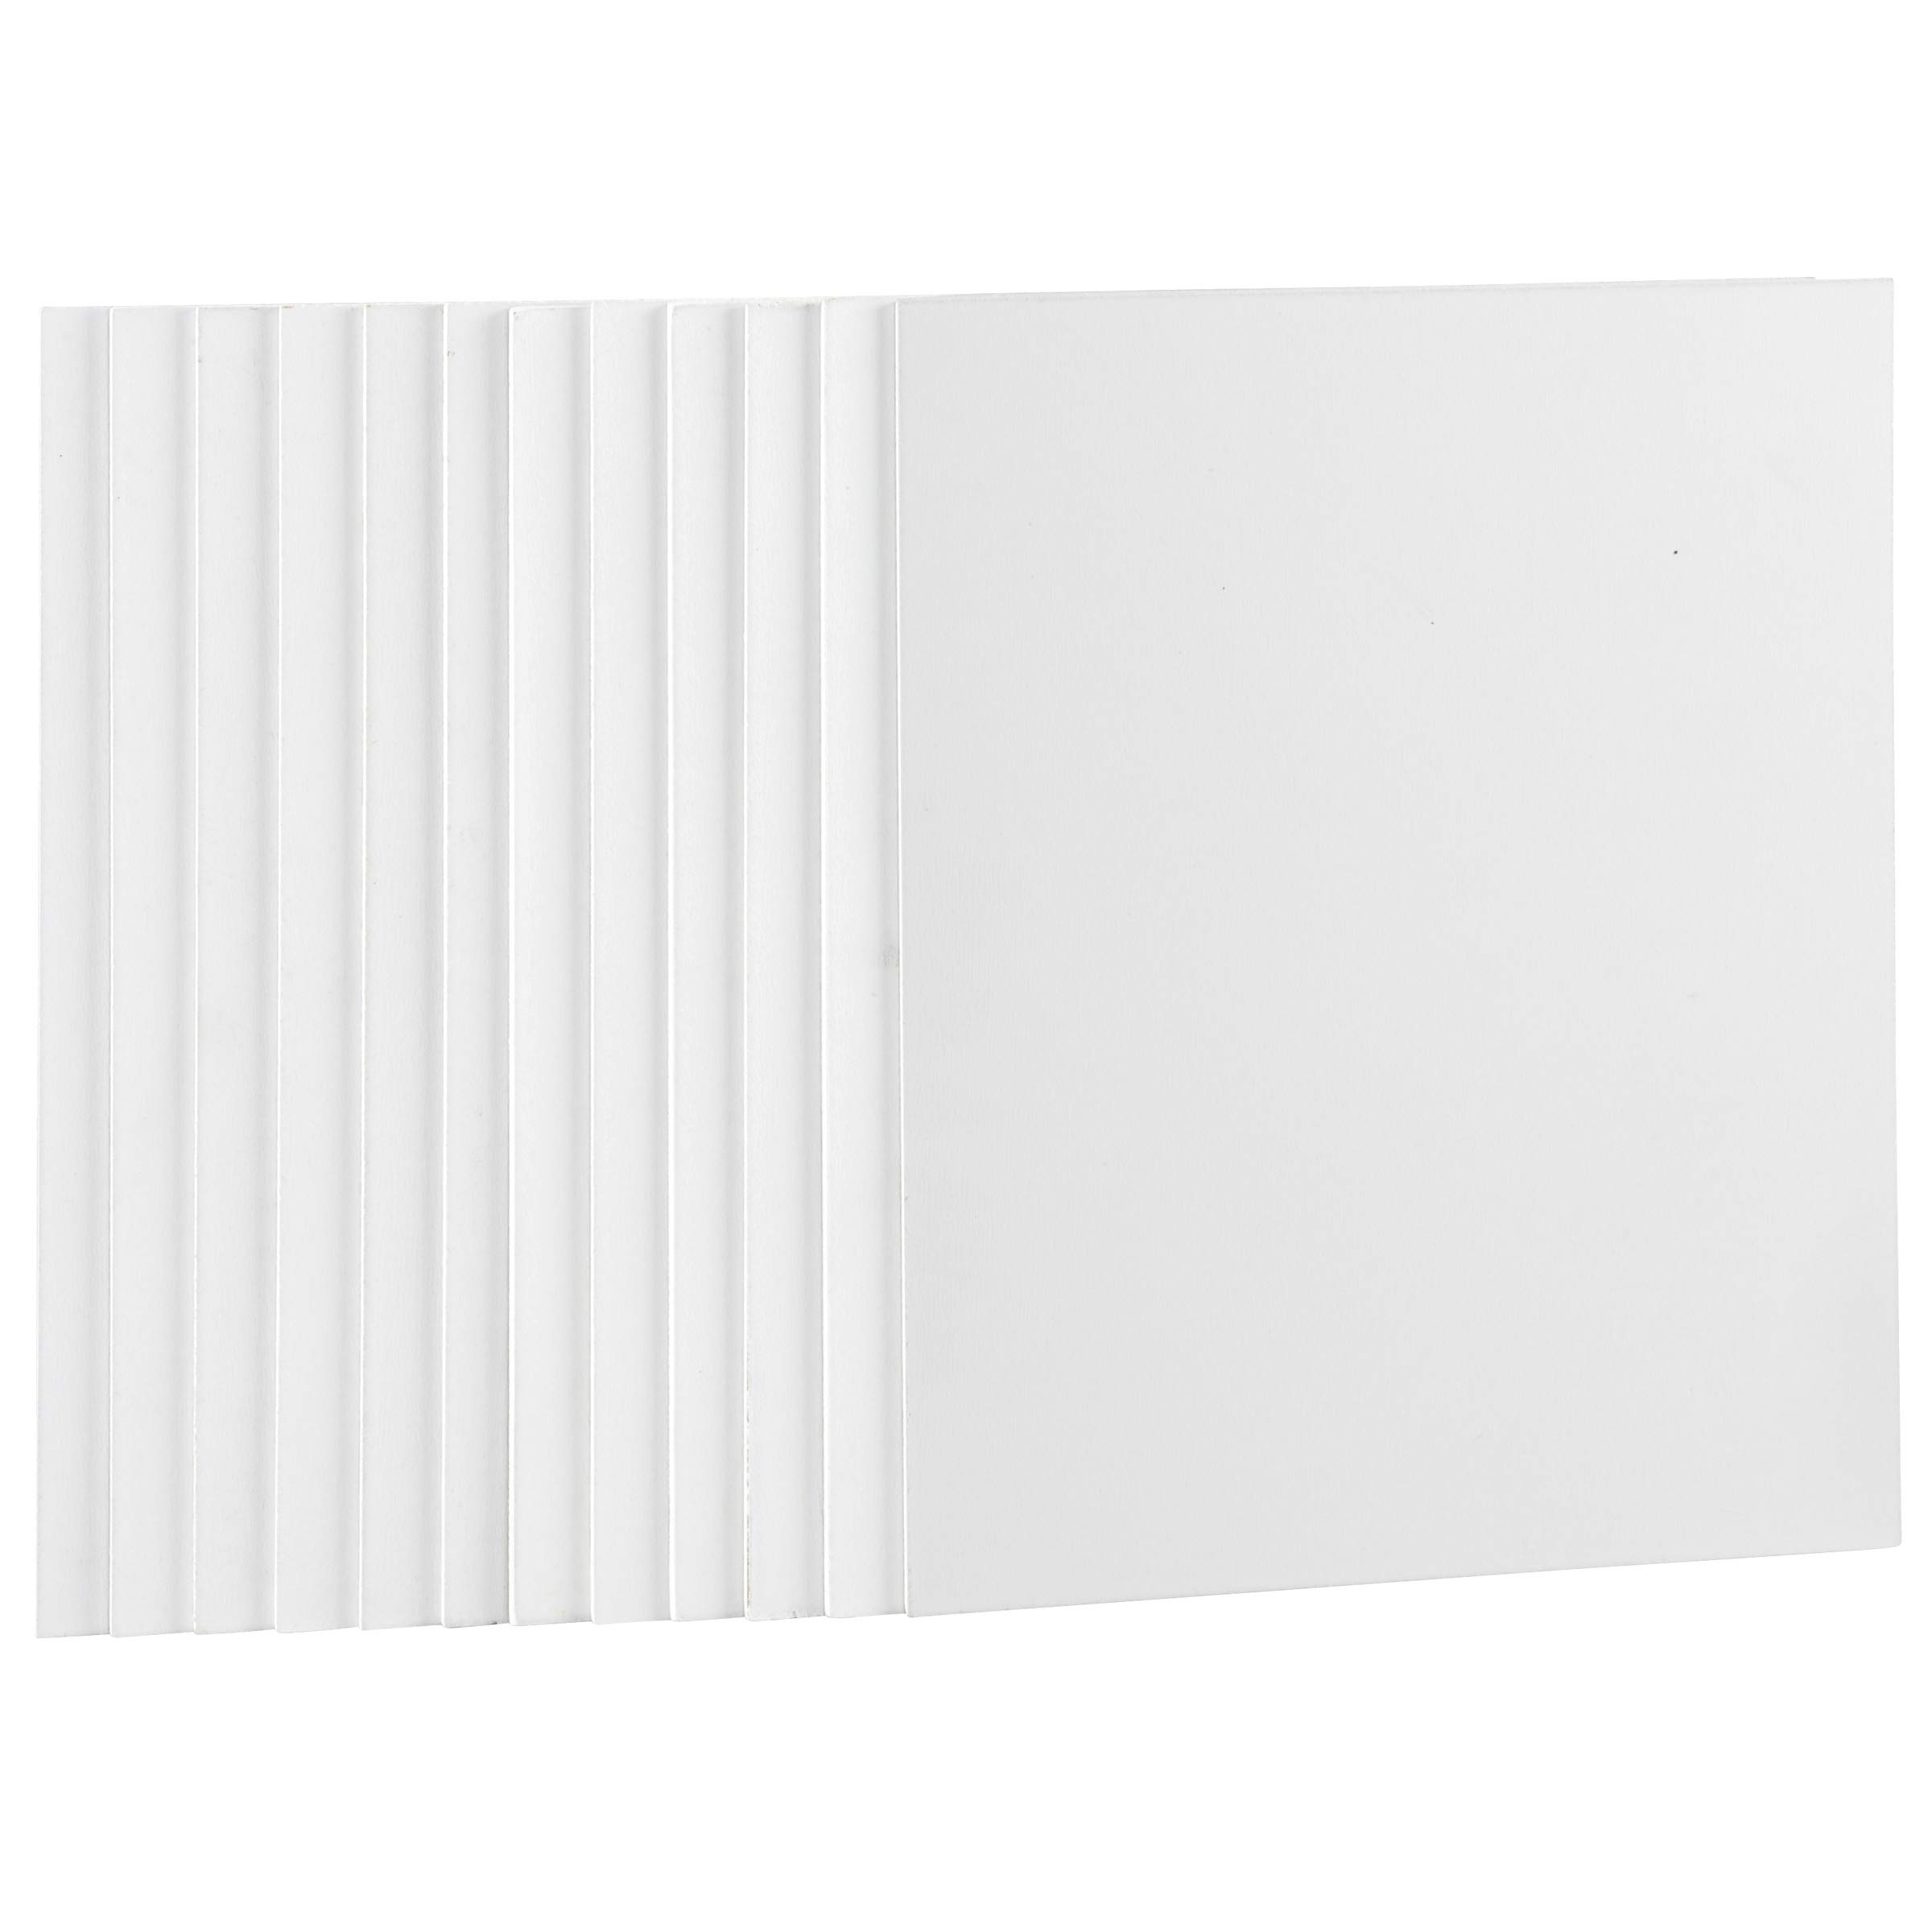 Artlicious Gesso Boards 12 Pack - 8X10 Art Boards for Painting by Artlicious